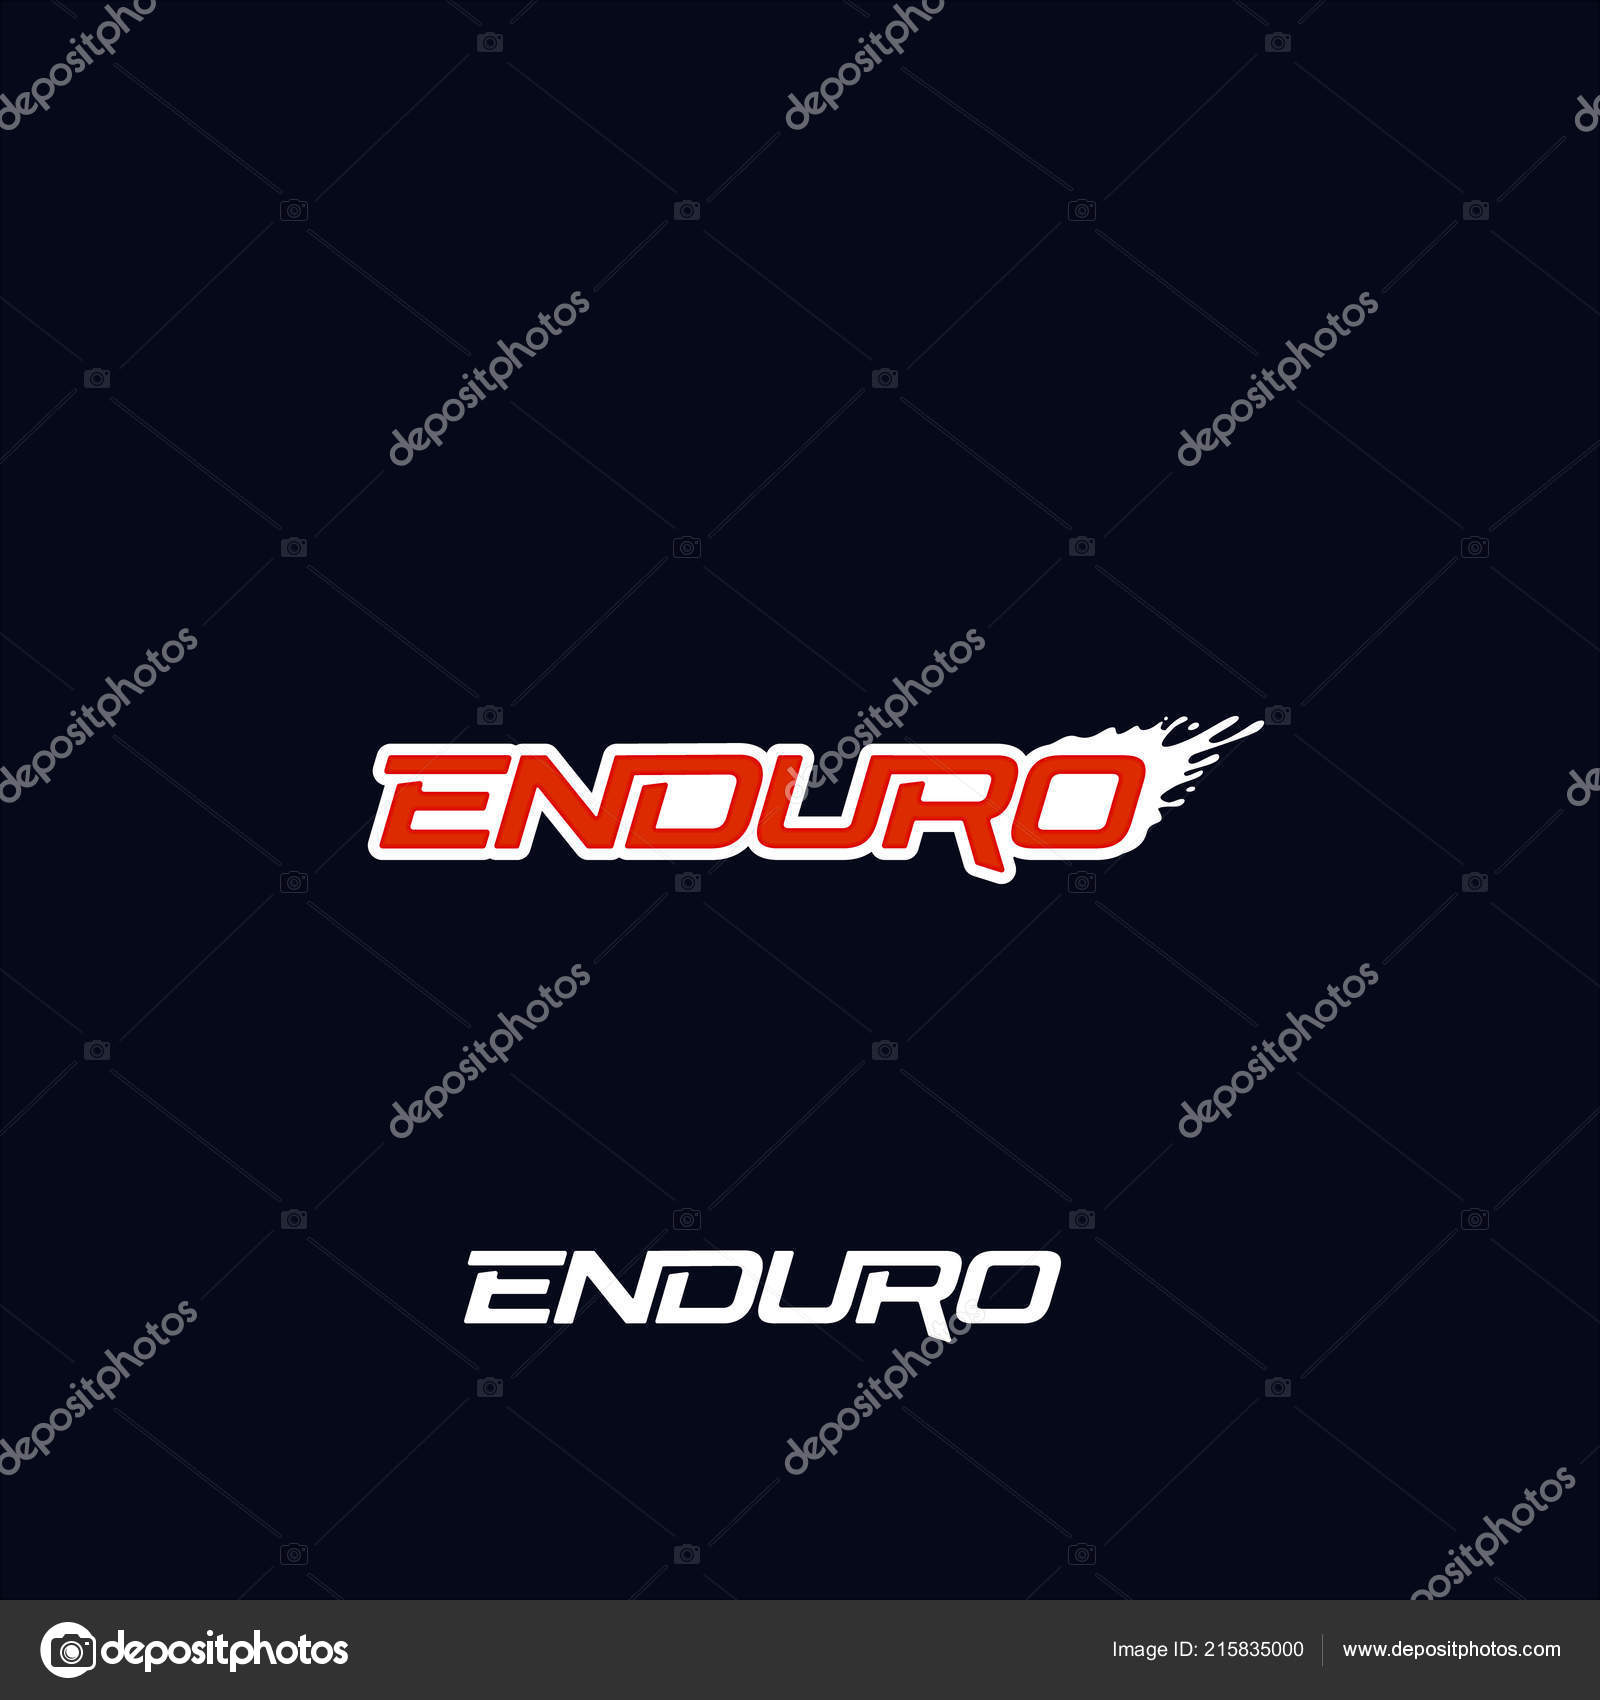 enduro logo vector design dirt splash extreme off road motorcycle